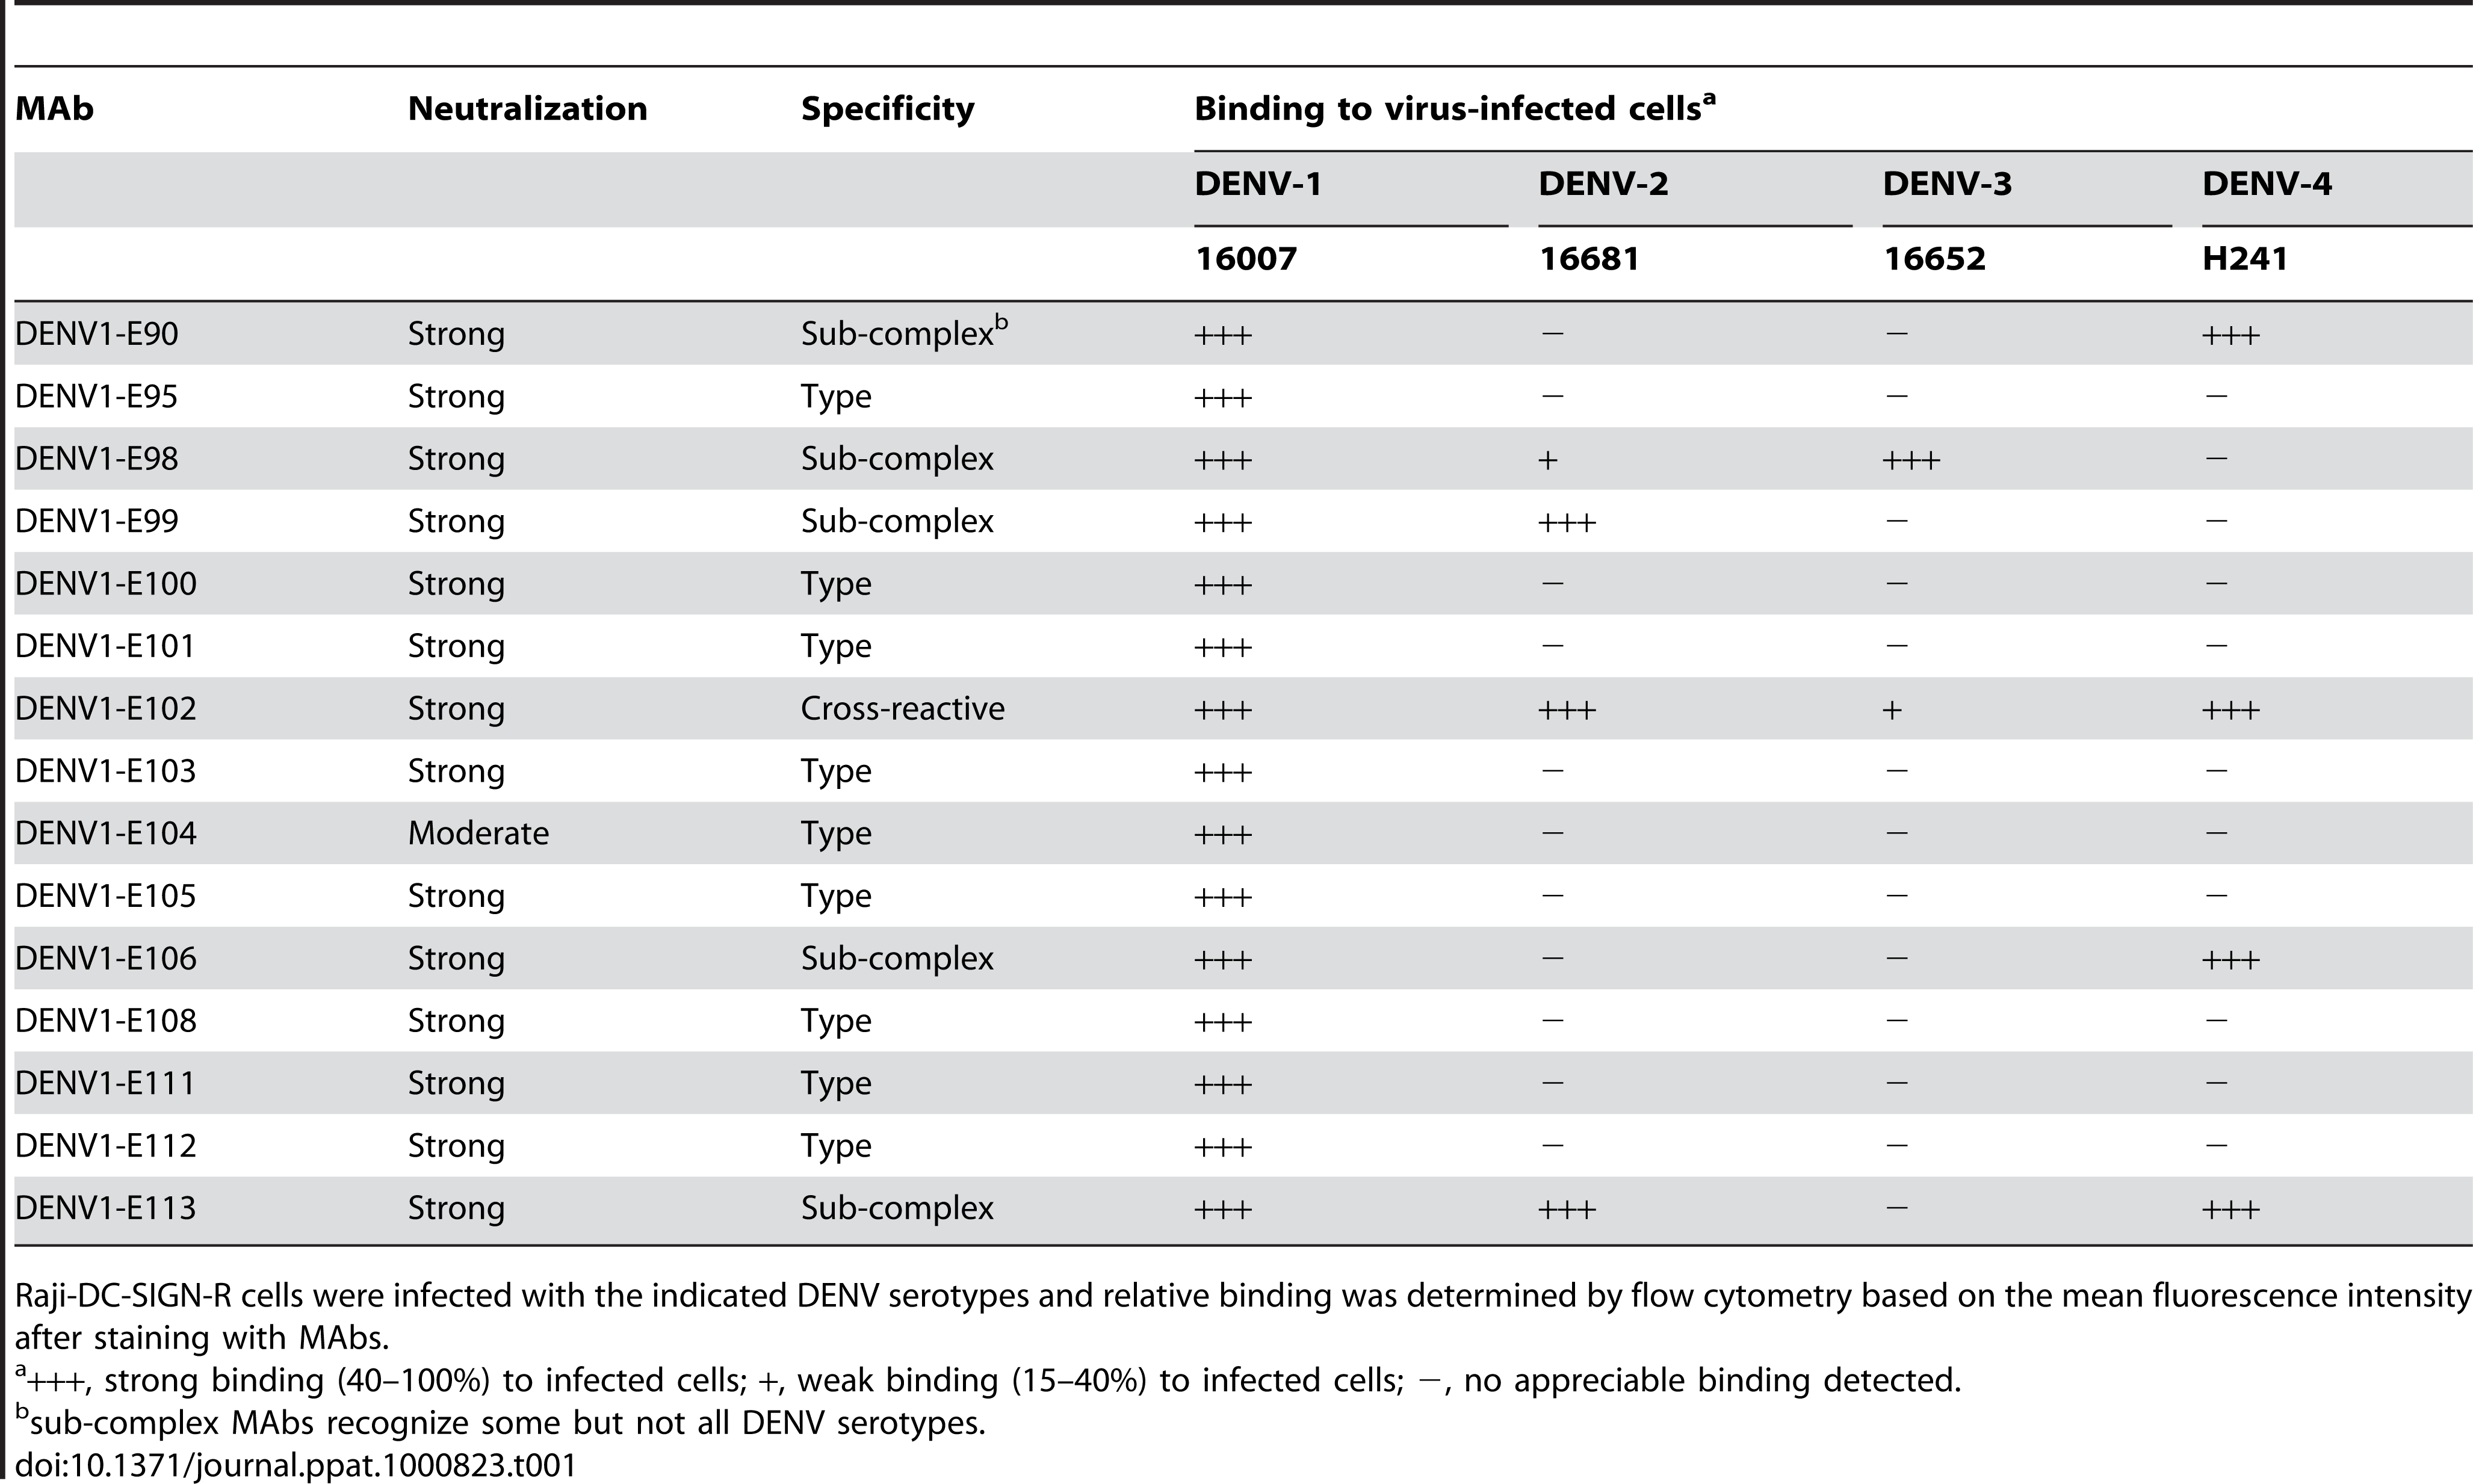 Binding of MAbs to cells infected with other DENV serotypes.